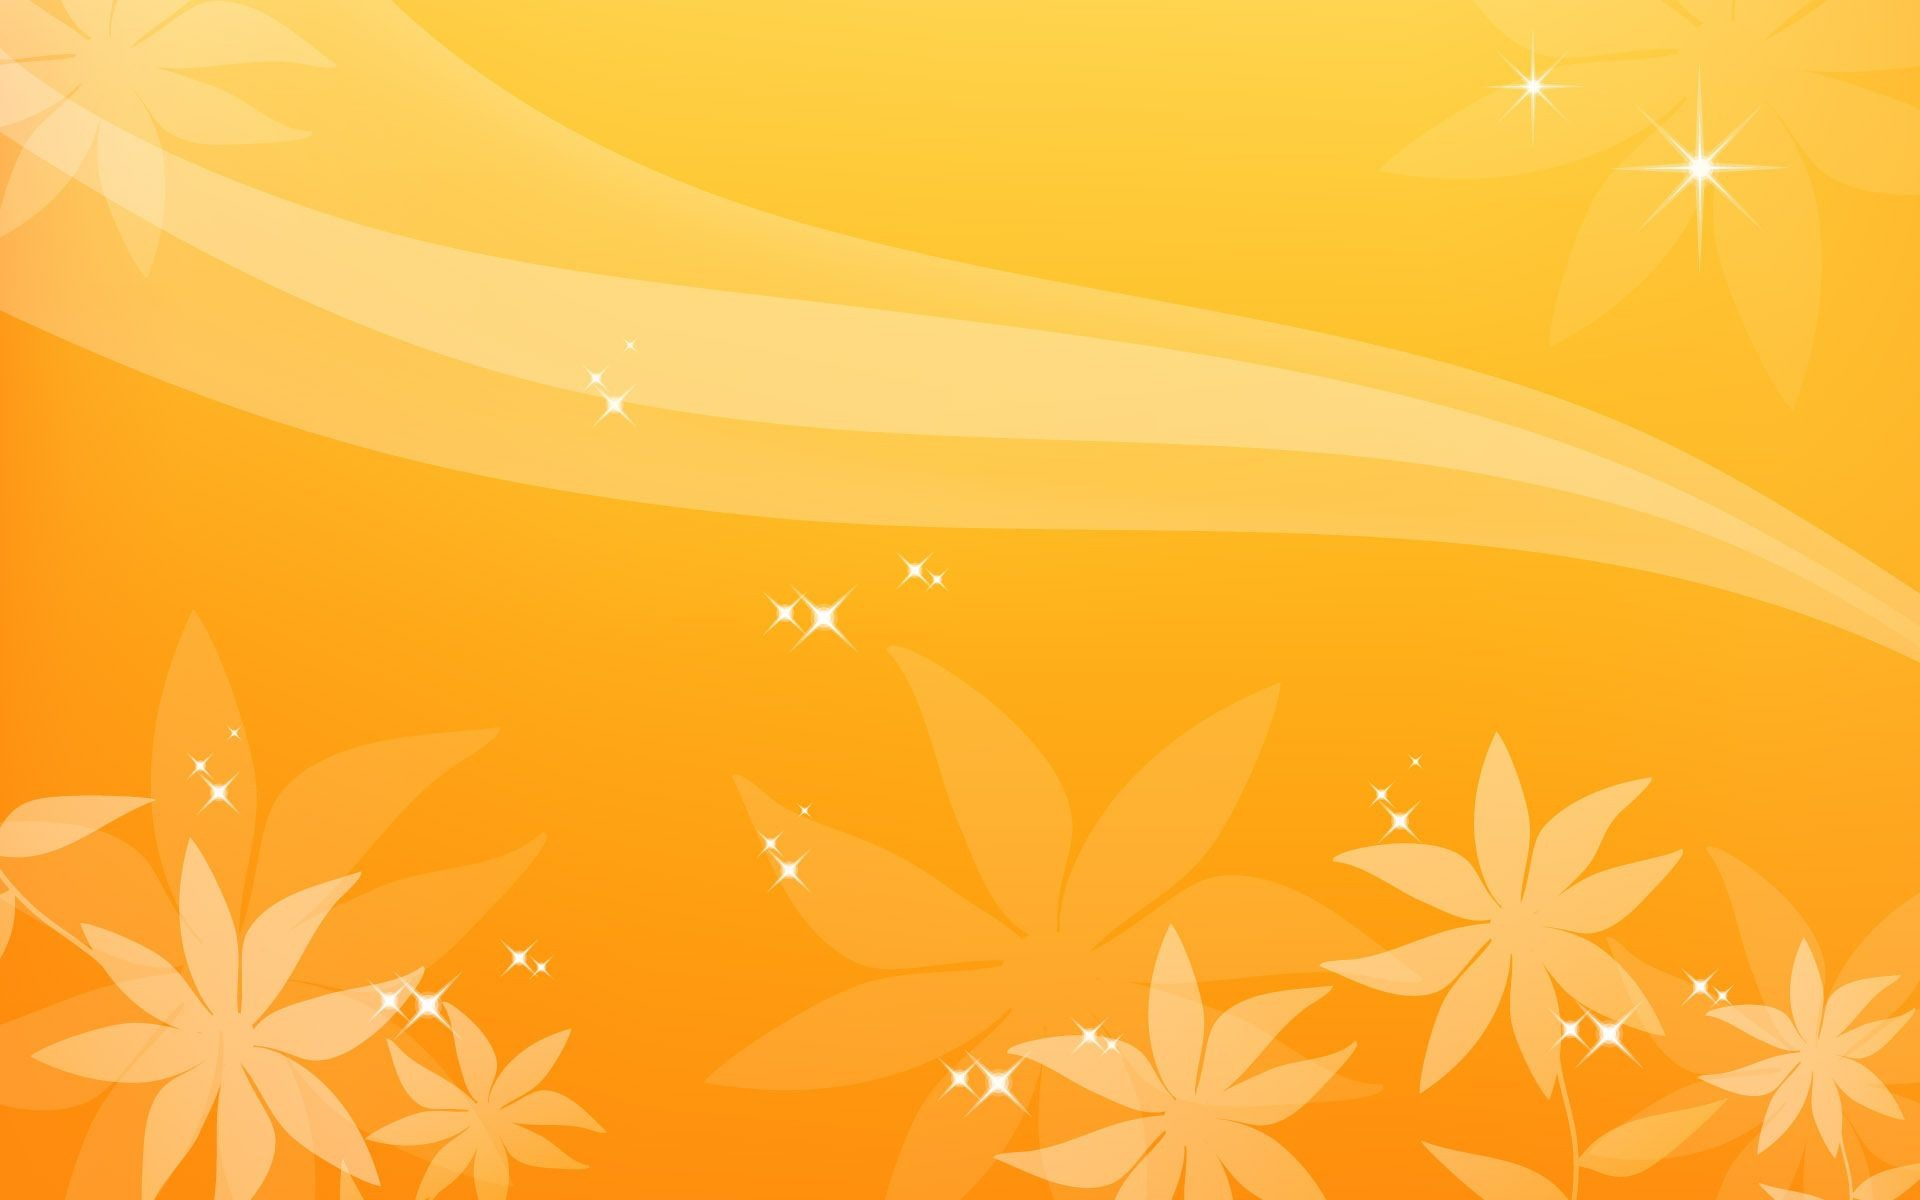 Yellow Background High Definition #3493 Wallpaper   High Quality .